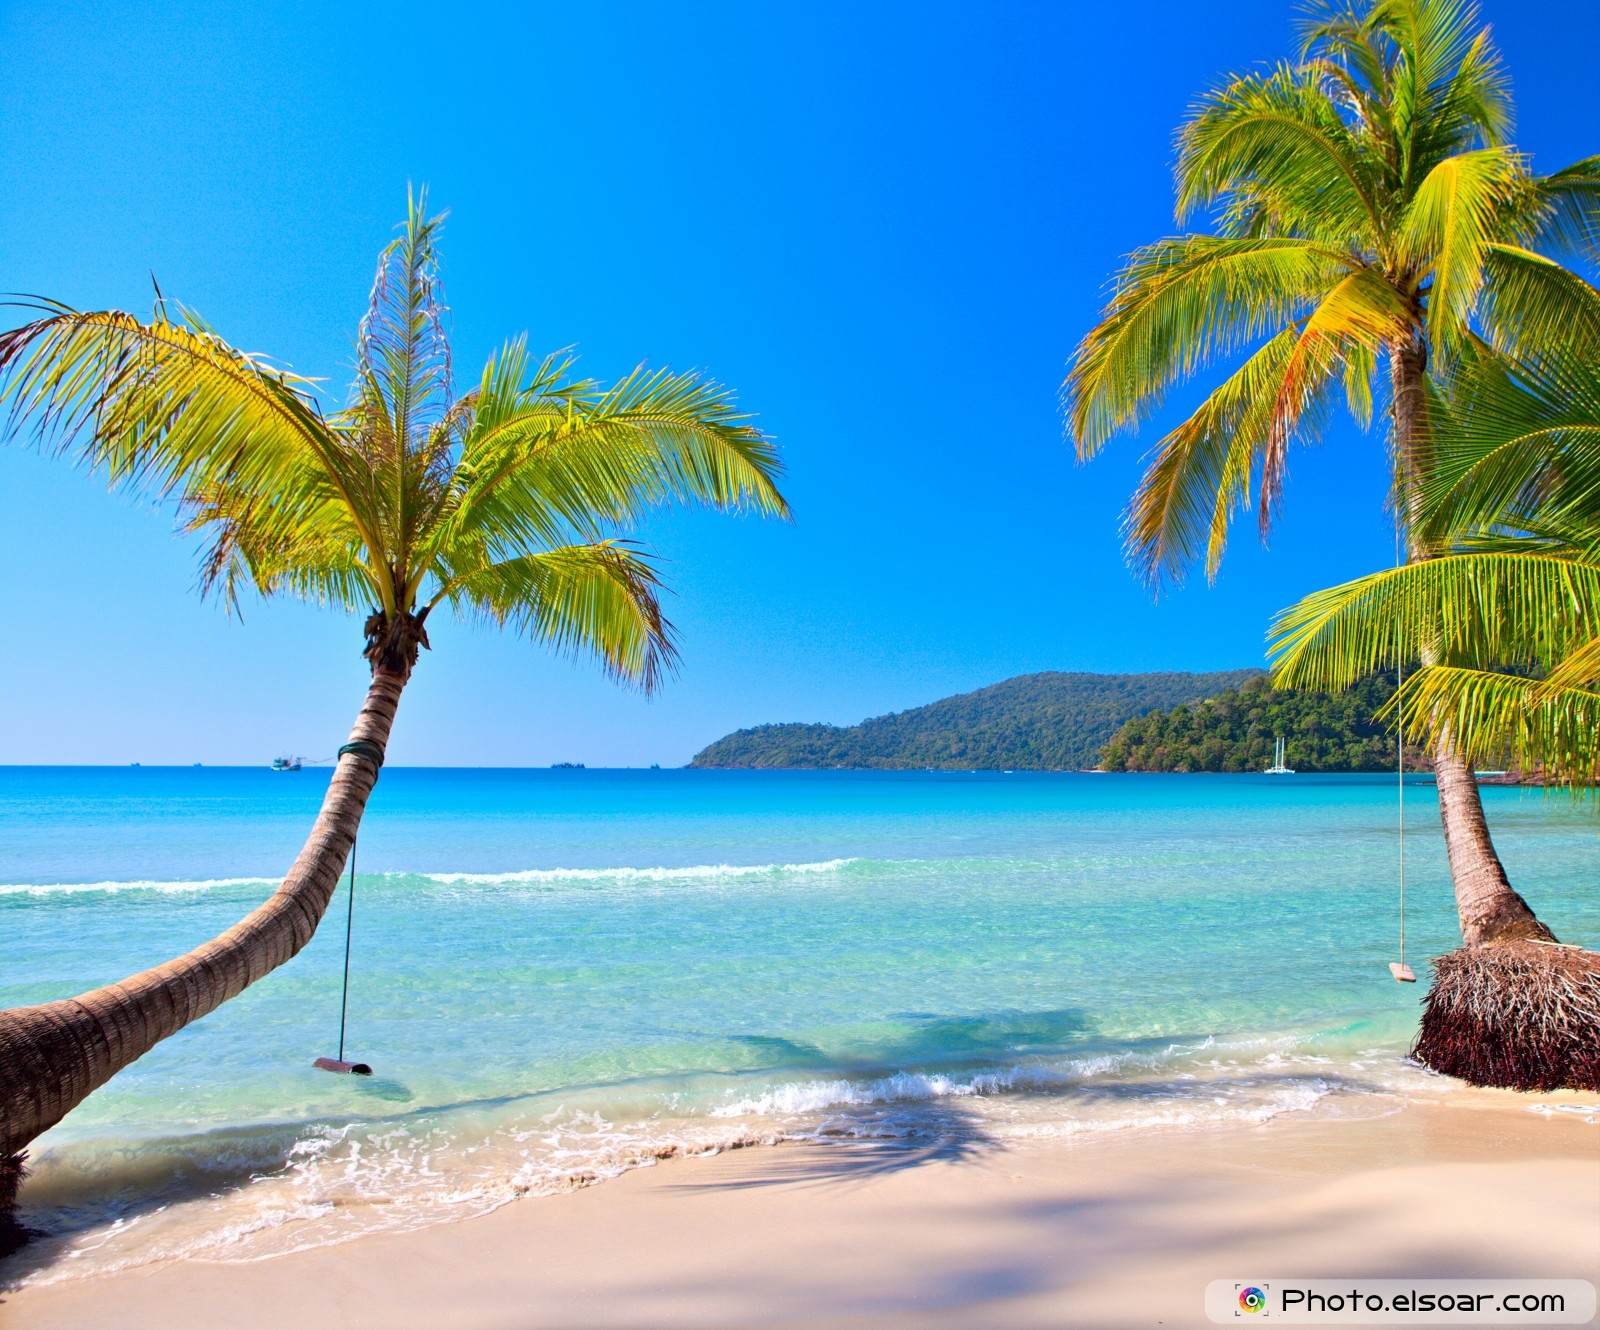 Tropical Paradise Beach Coast Sea Blue Emerald Ocean: 25+ Most Beautiful And Luxury Paradise Vacations. Pictures